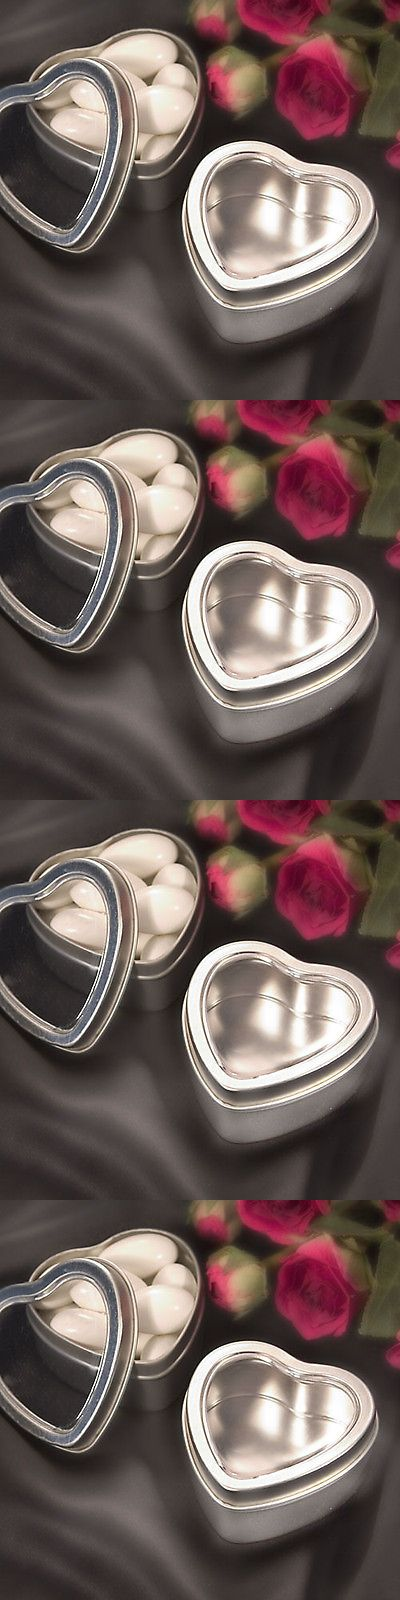 Favors and Party Bag Fillers 26385: 200 Heart Mint Tin Bridal Shower Wedding Diy Favor Party Event Bulk Lot -> BUY IT NOW ONLY: $143.99 on eBay!